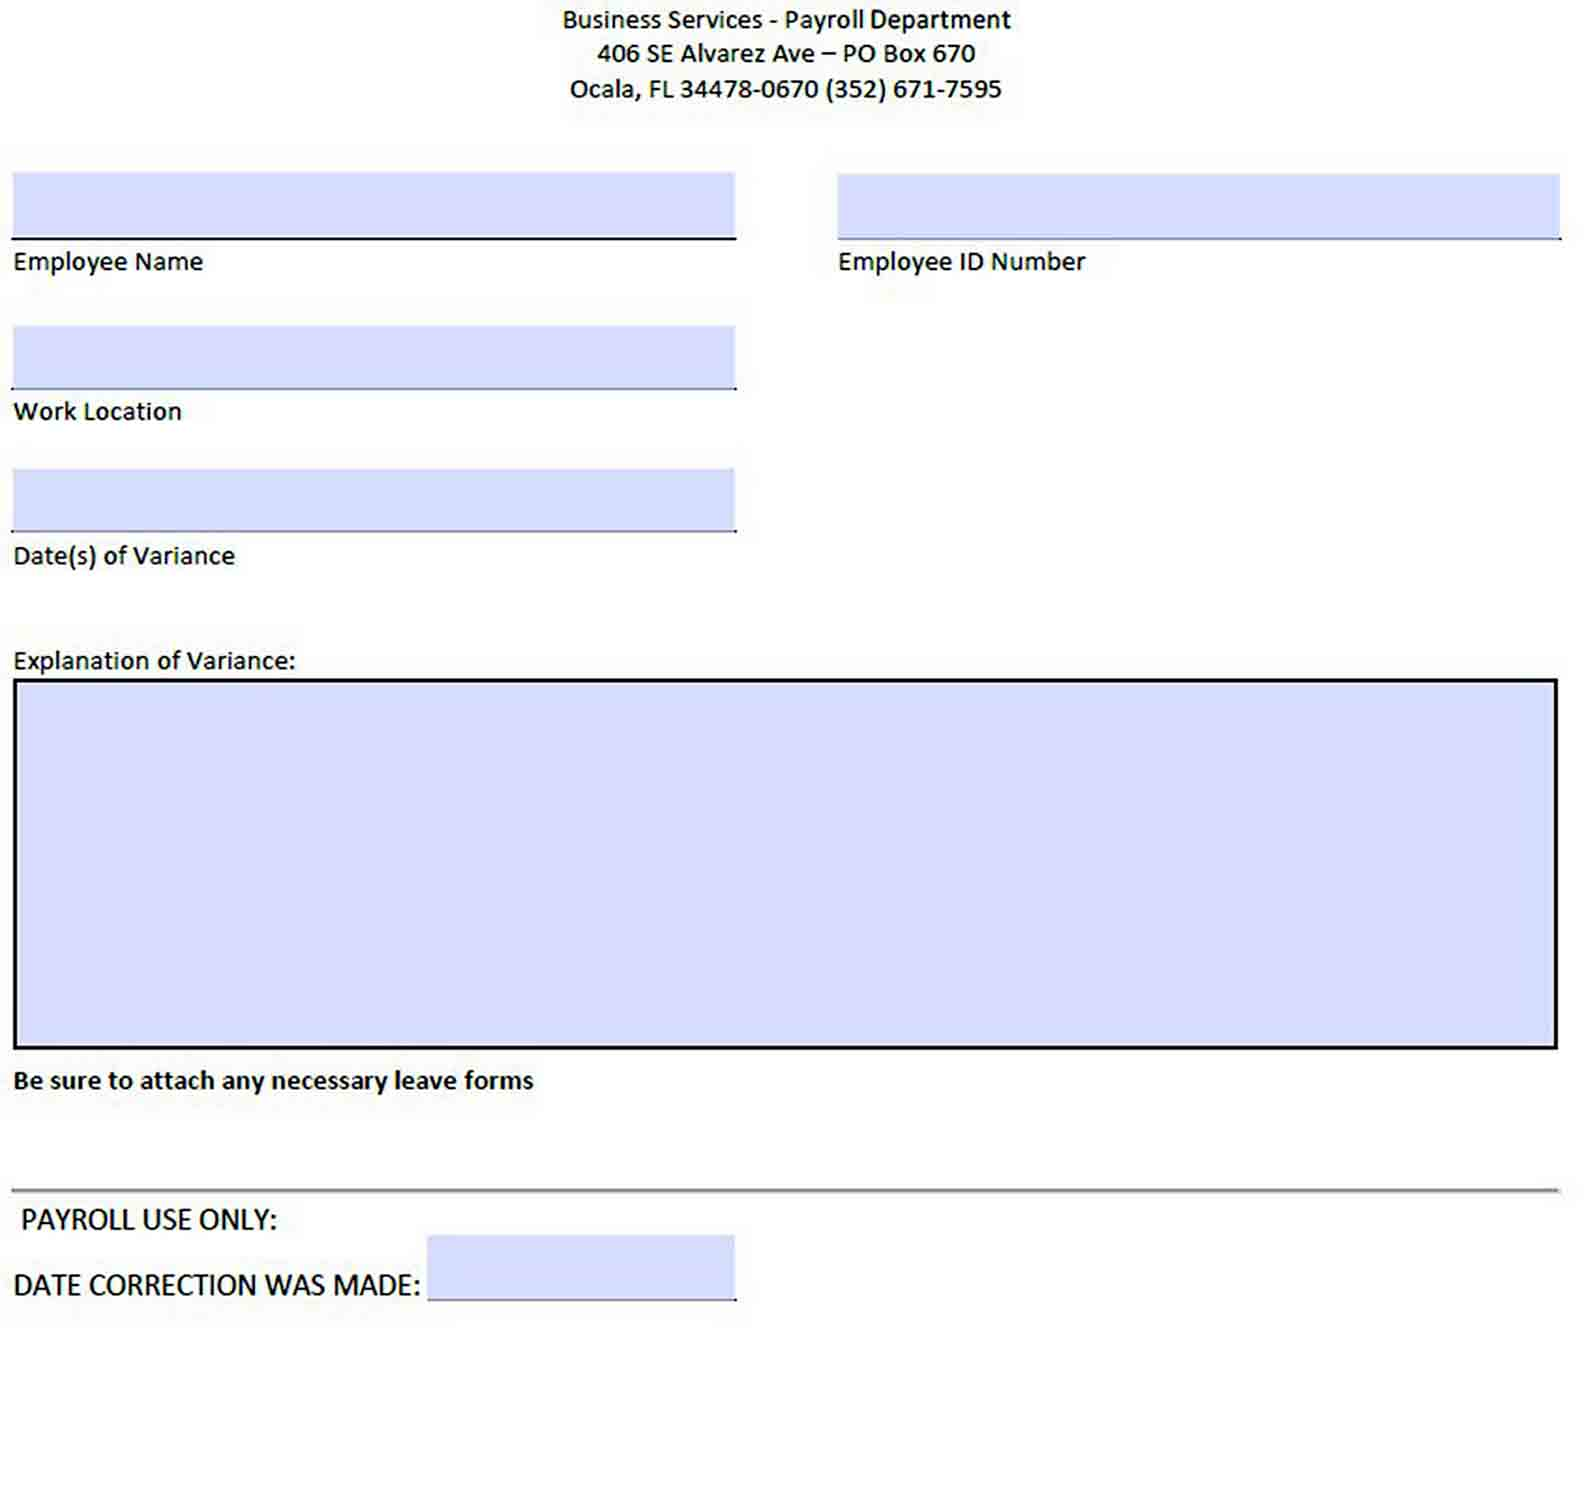 Payroll Exception Report sample